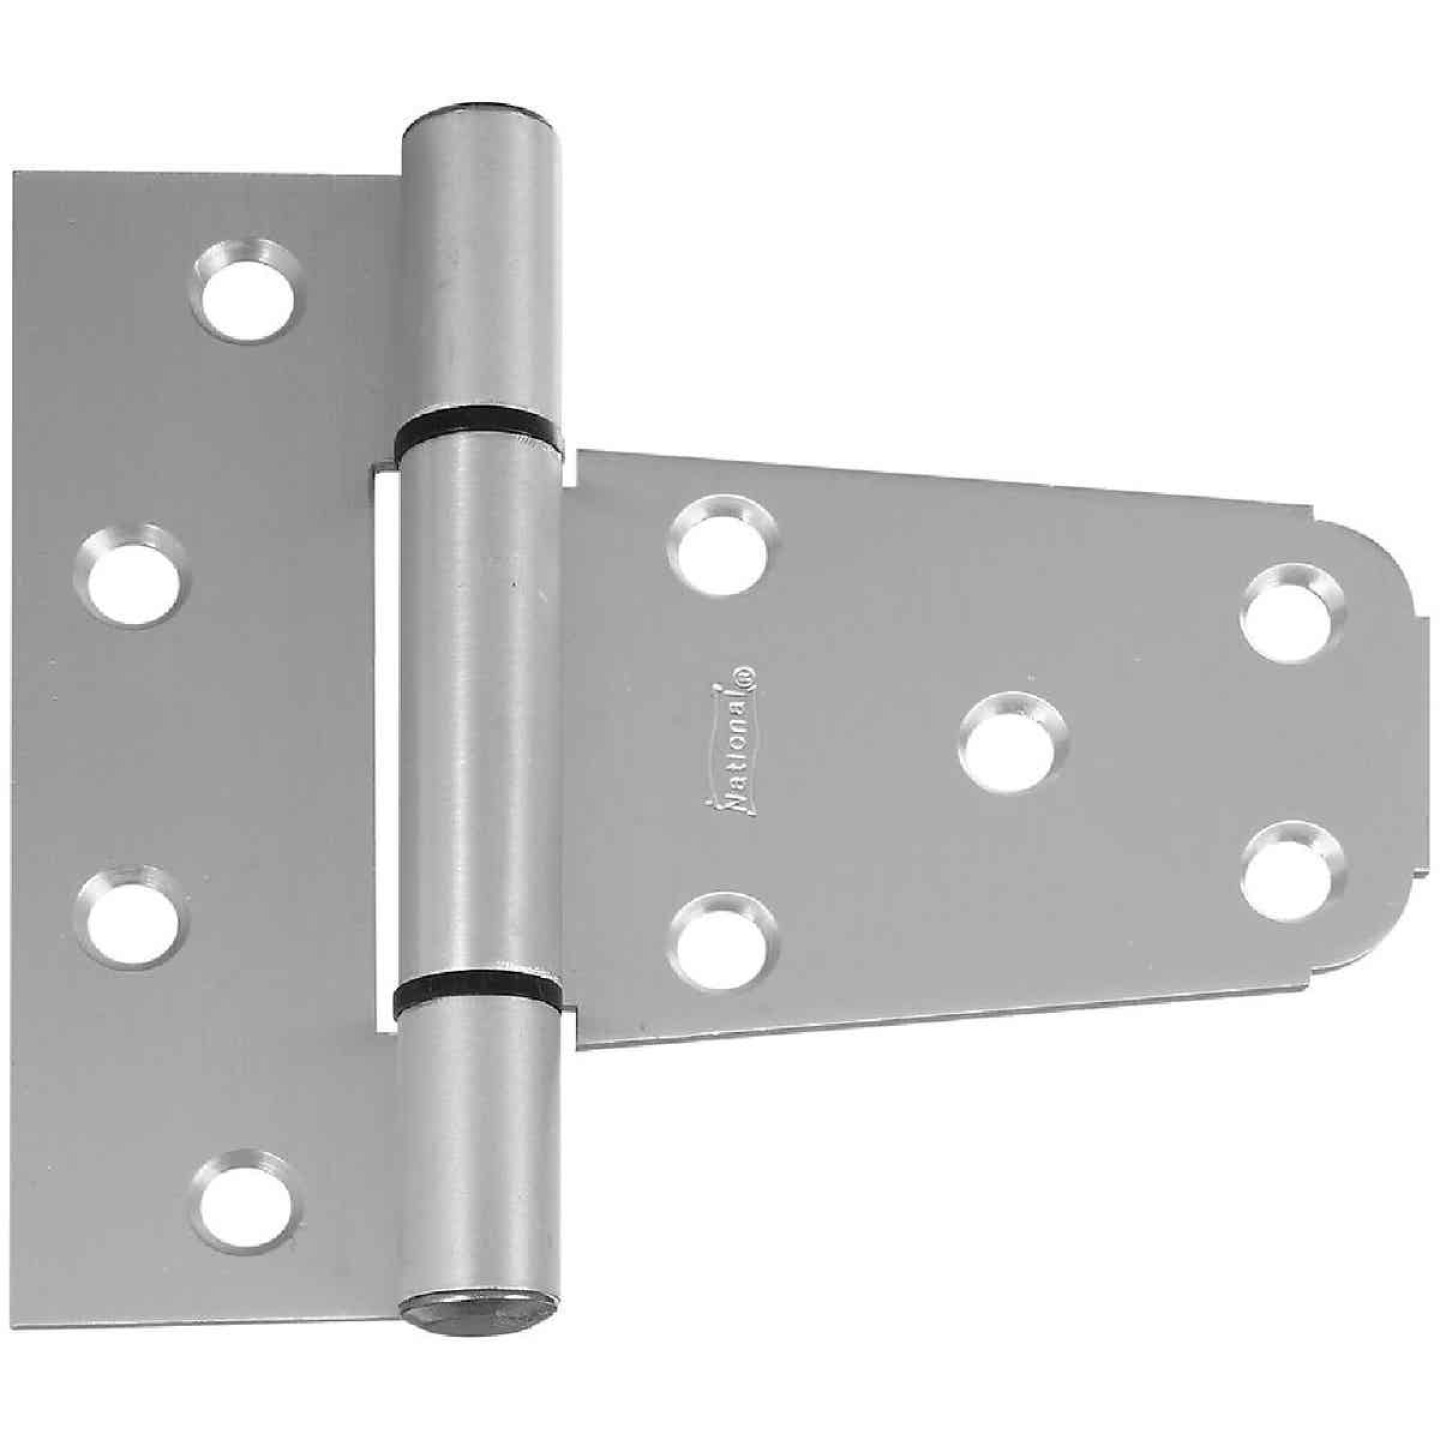 National 3-1/2 In. Aluminum Vinyl Fence Gate Hinge Image 1